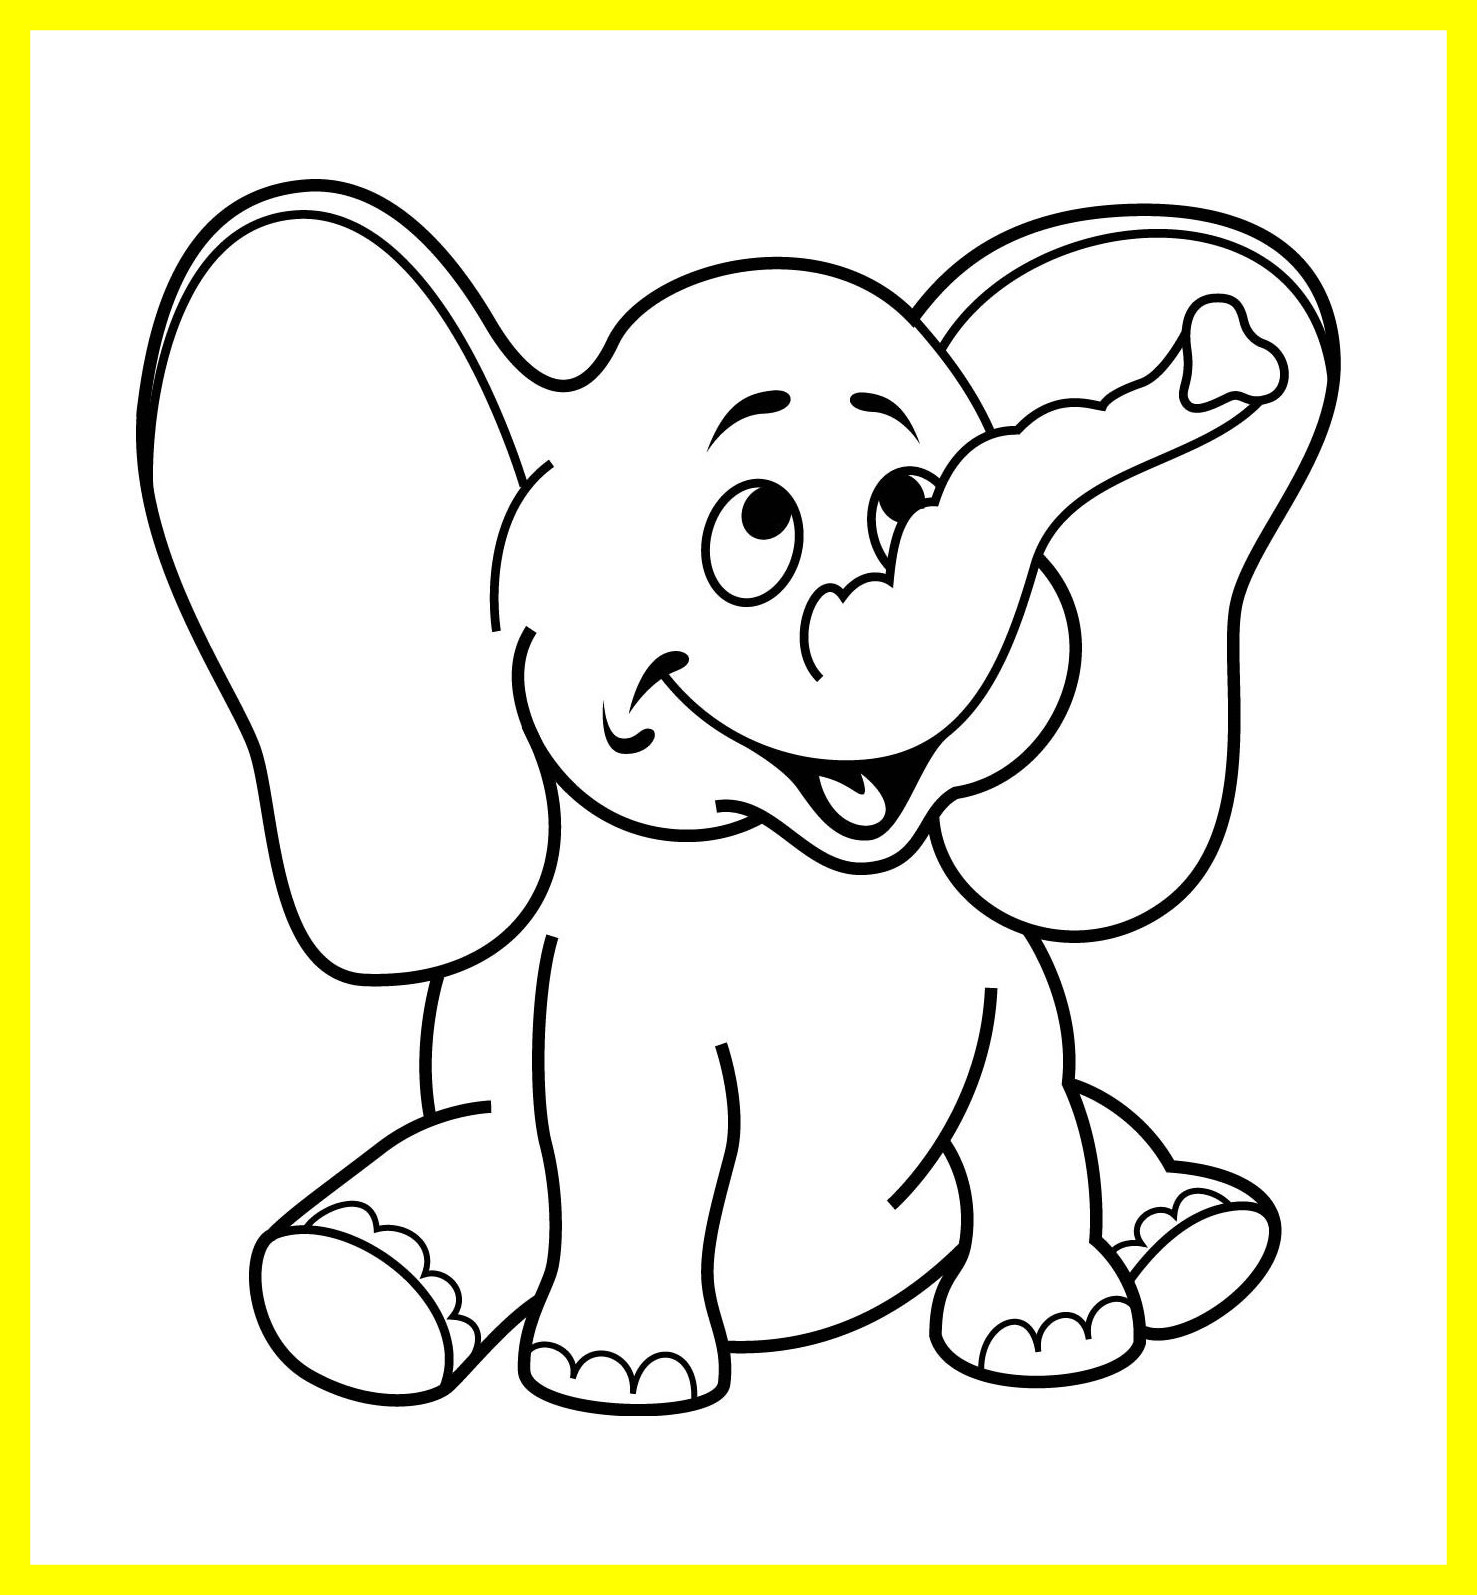 Coloring Pages For 11 Year Olds At Getcolorings